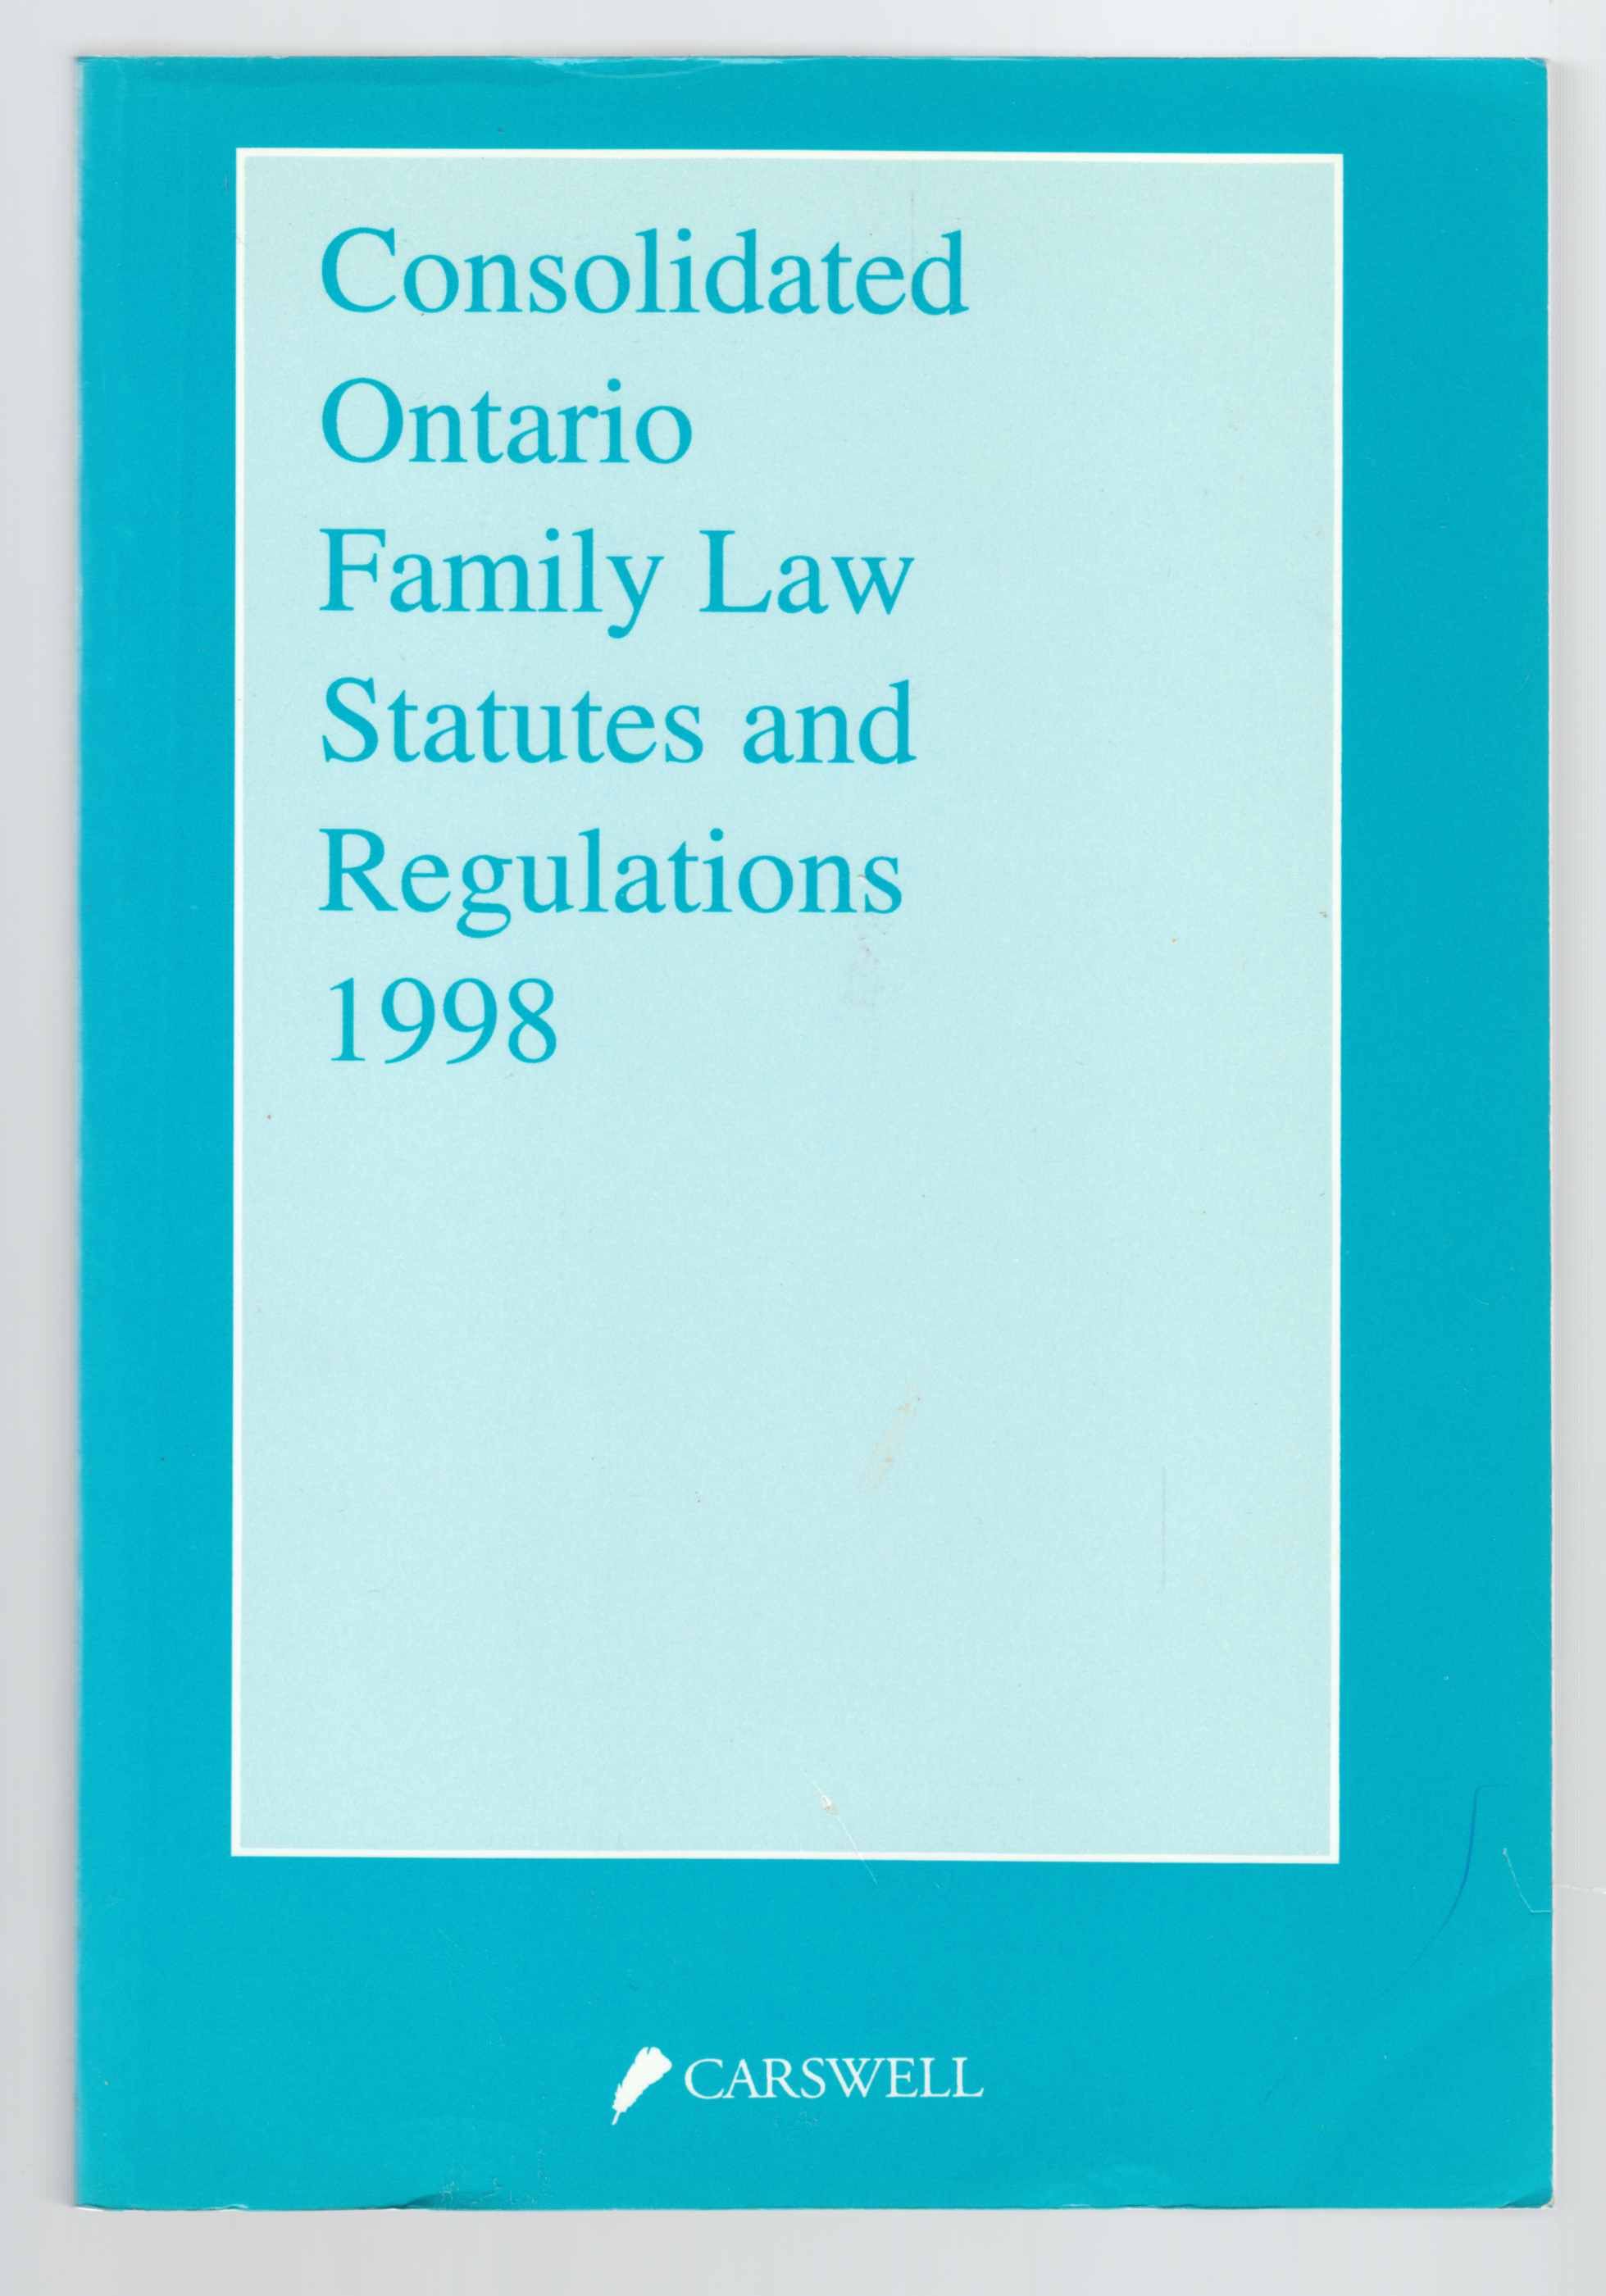 Image for Consolidated Ontario Family Law Statutes and Regulations 1998